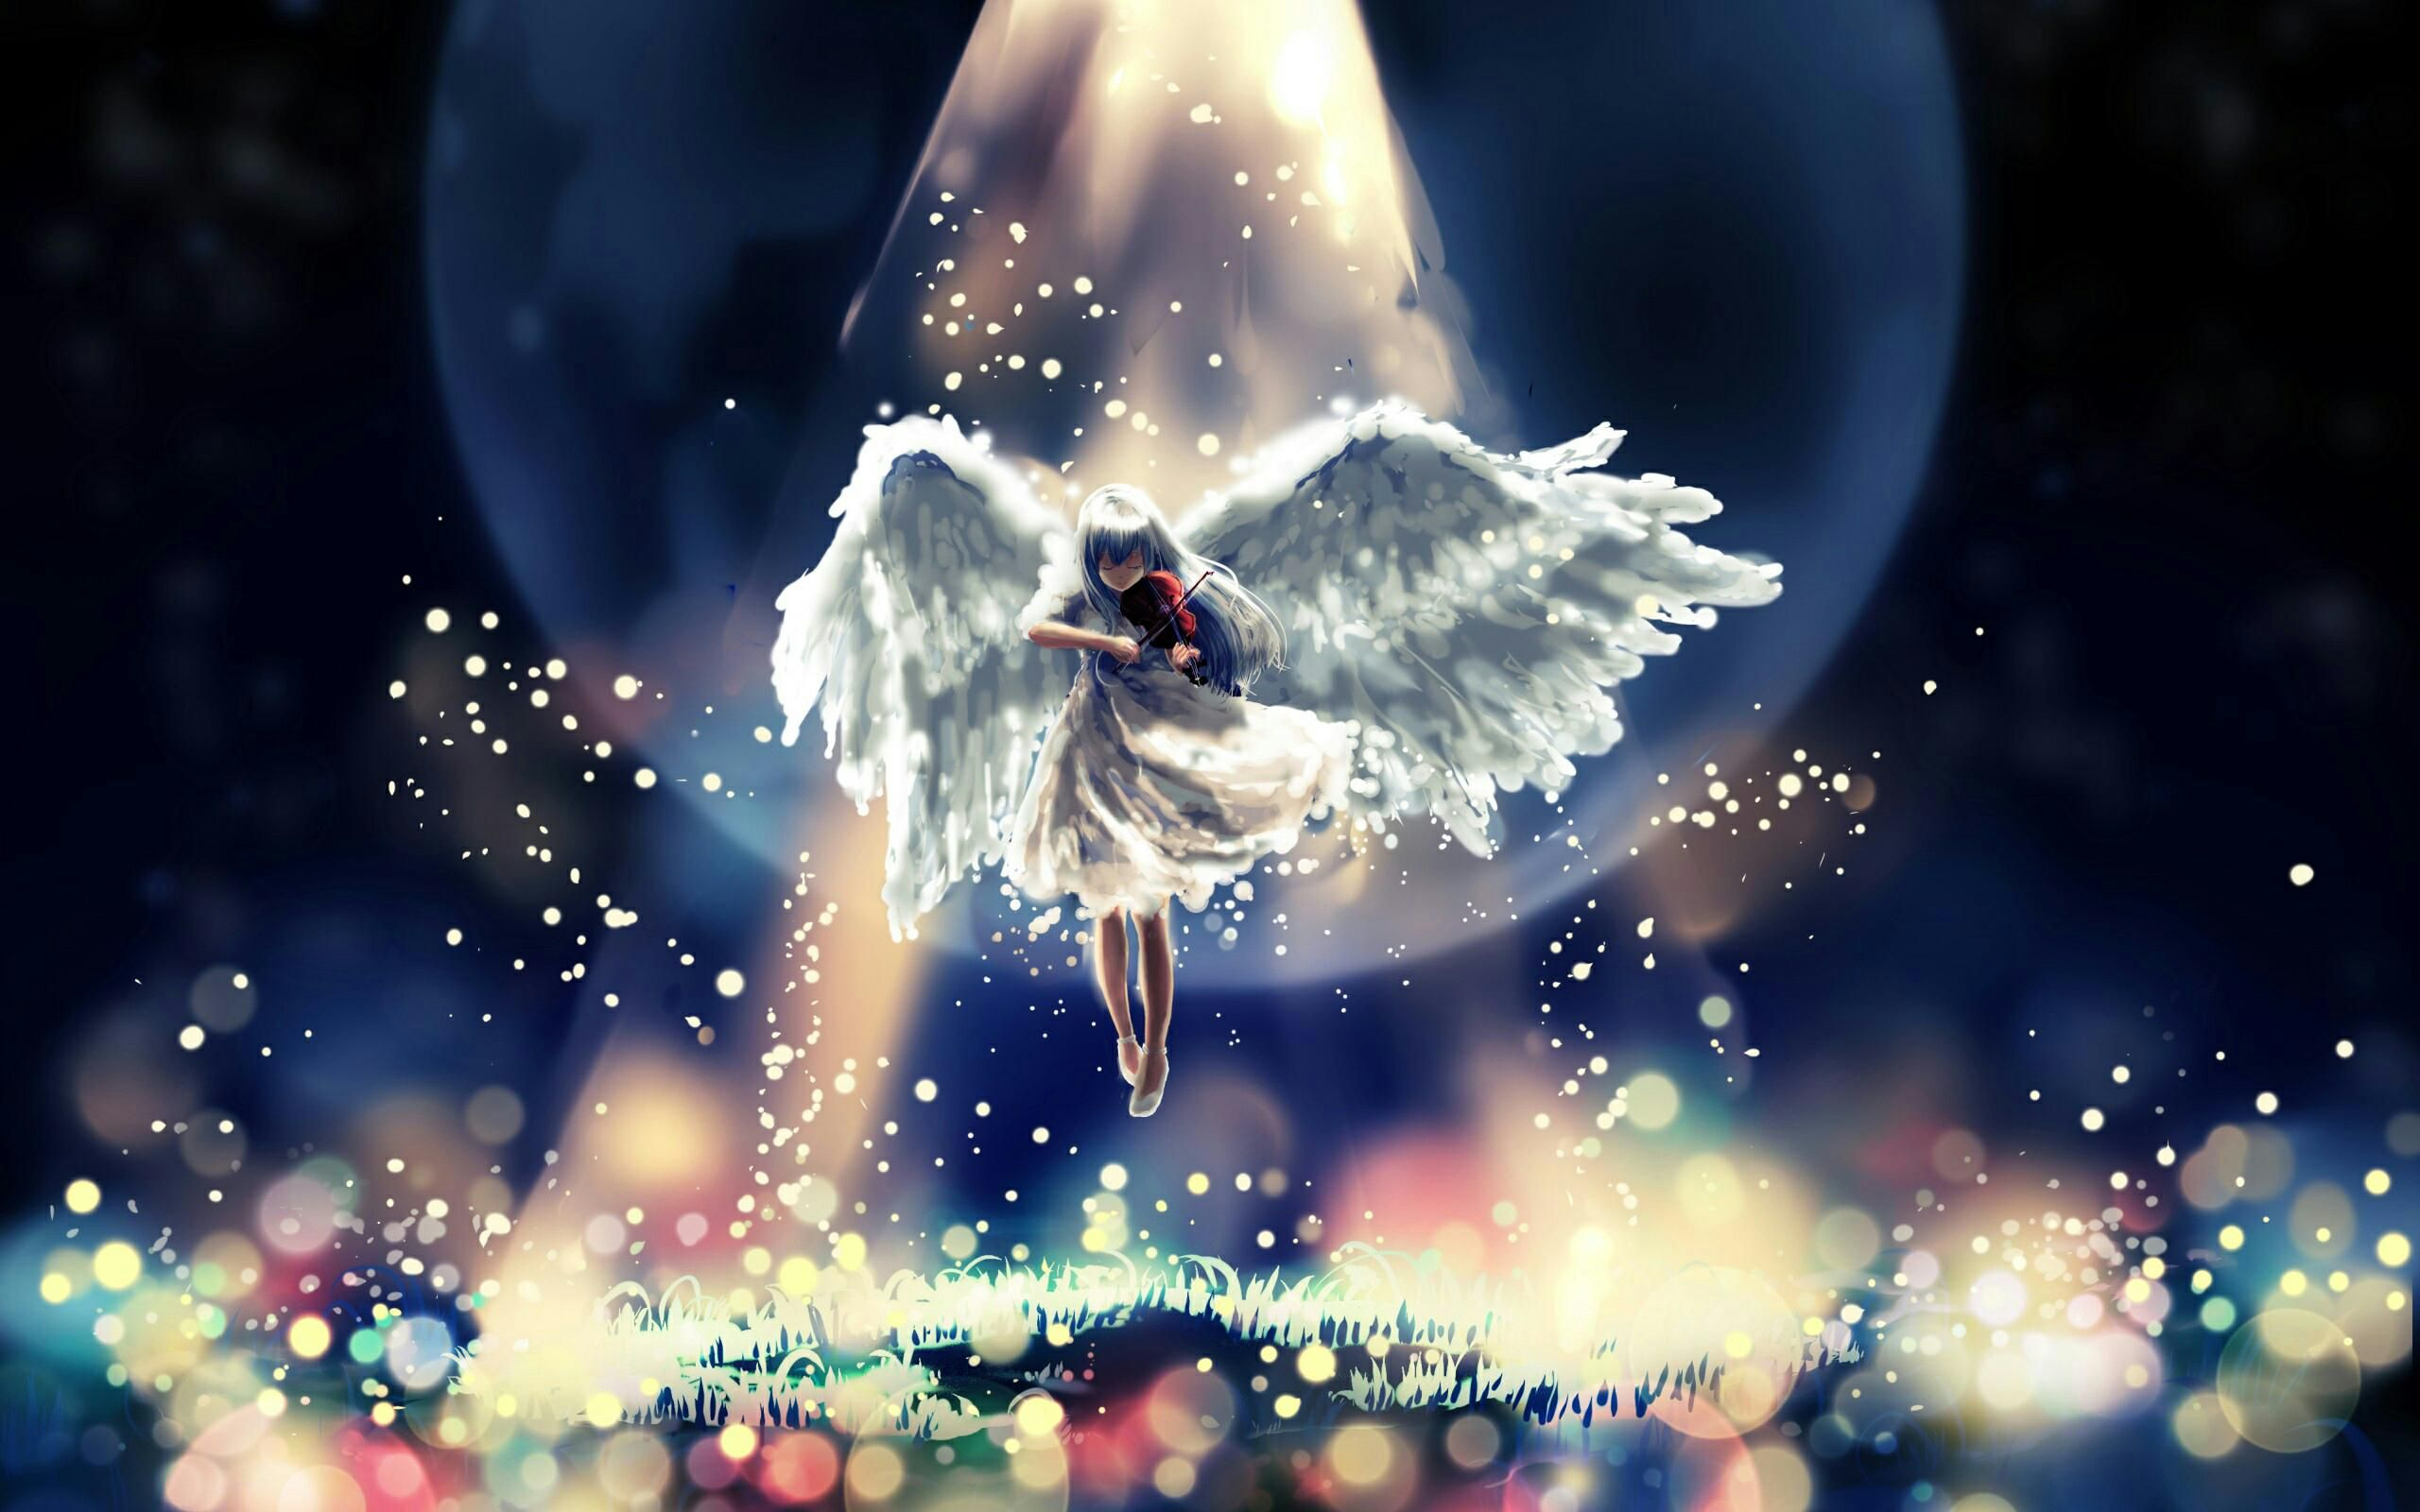 Anime Wallpaper And for Nightcore Angel wallpaper, Angel